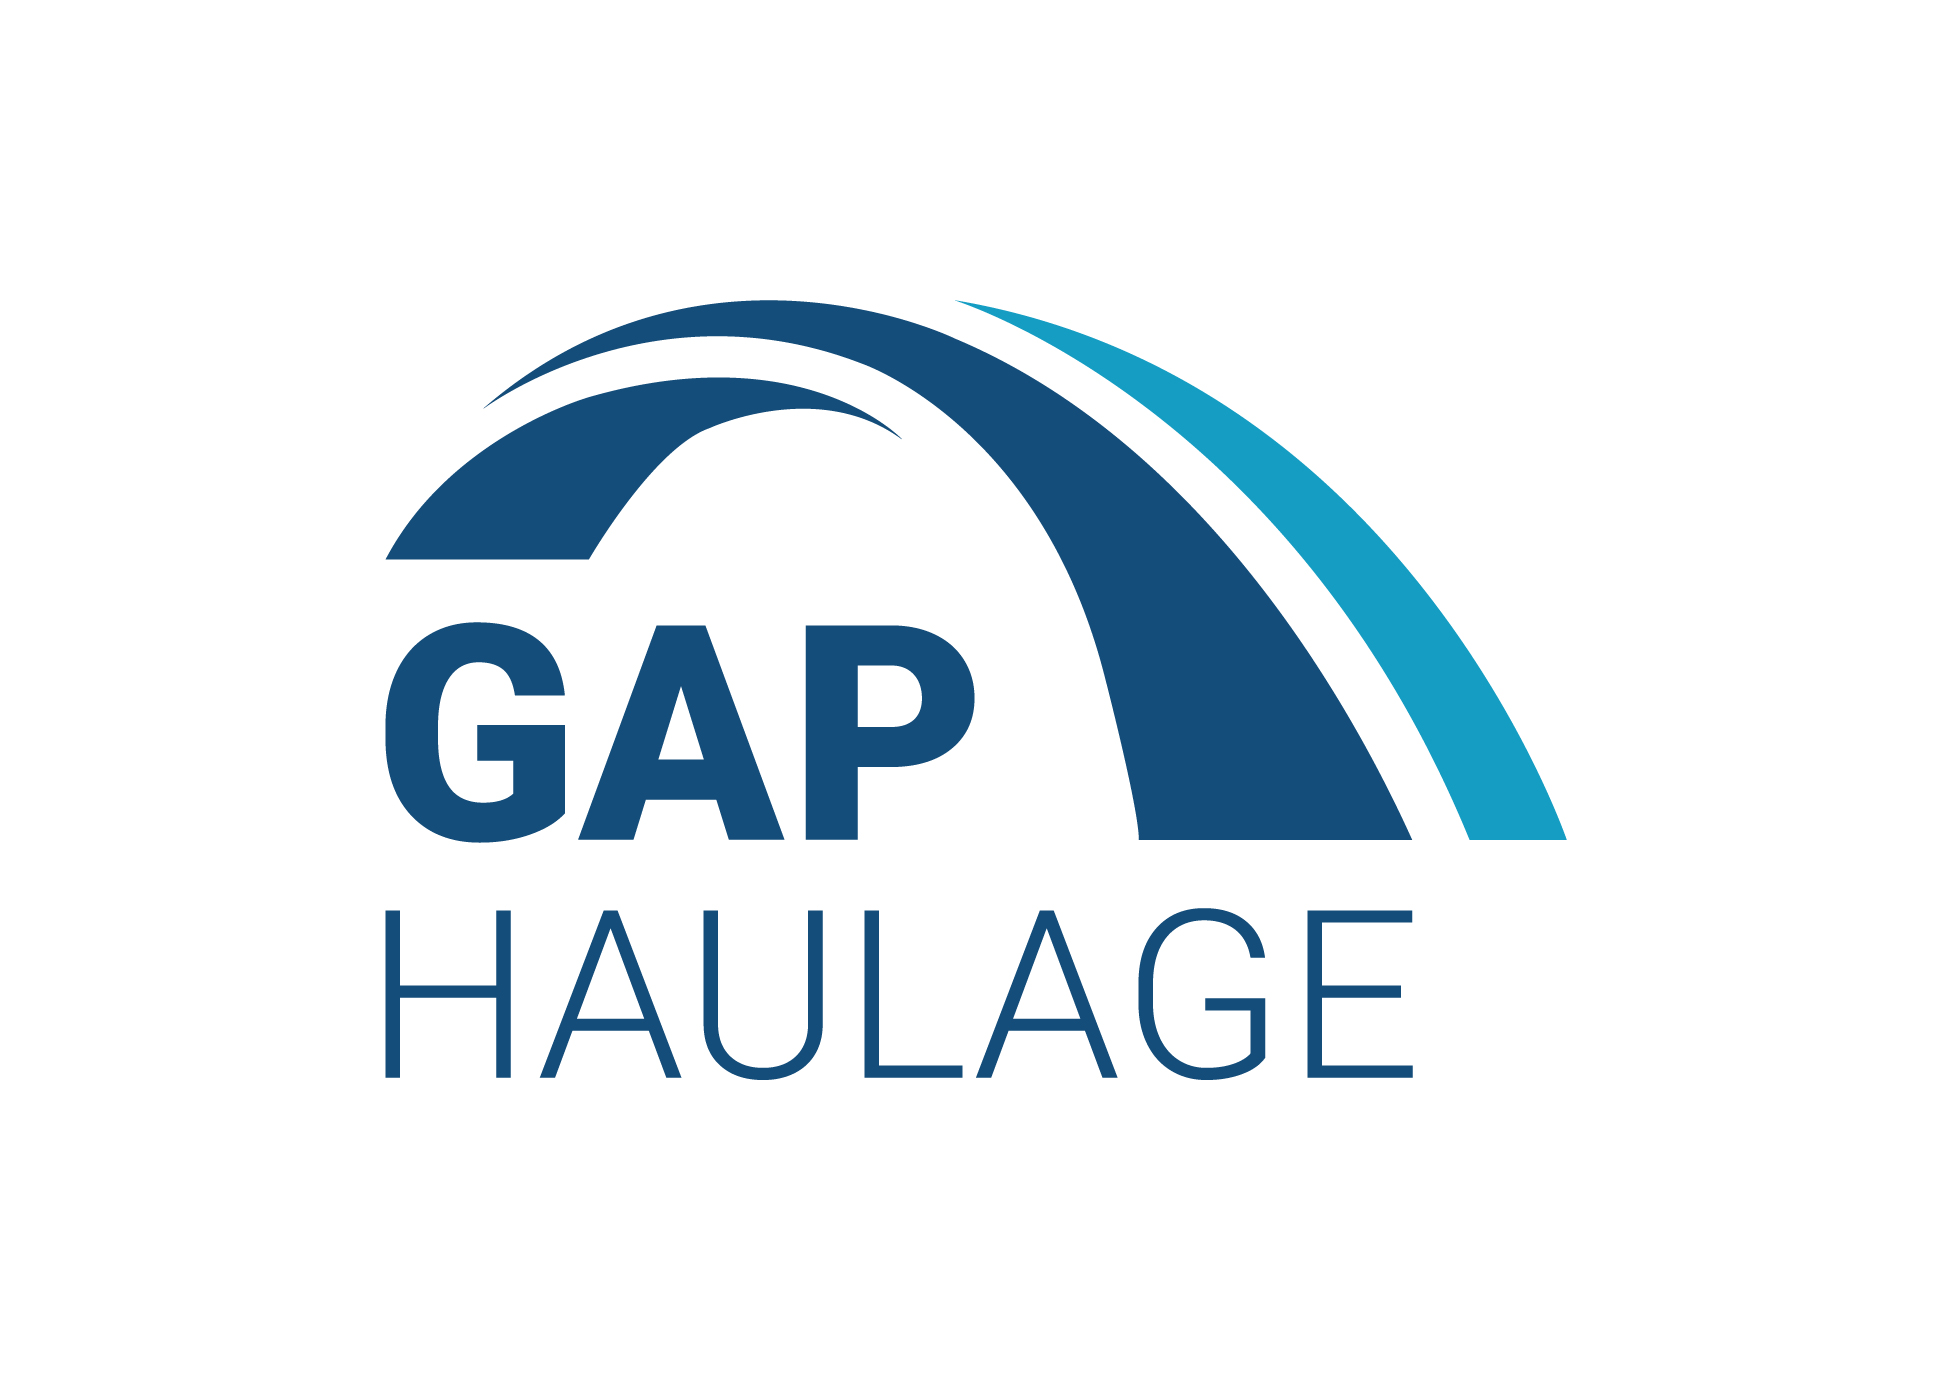 GAP Group Haulage and Waste Management use Mandata